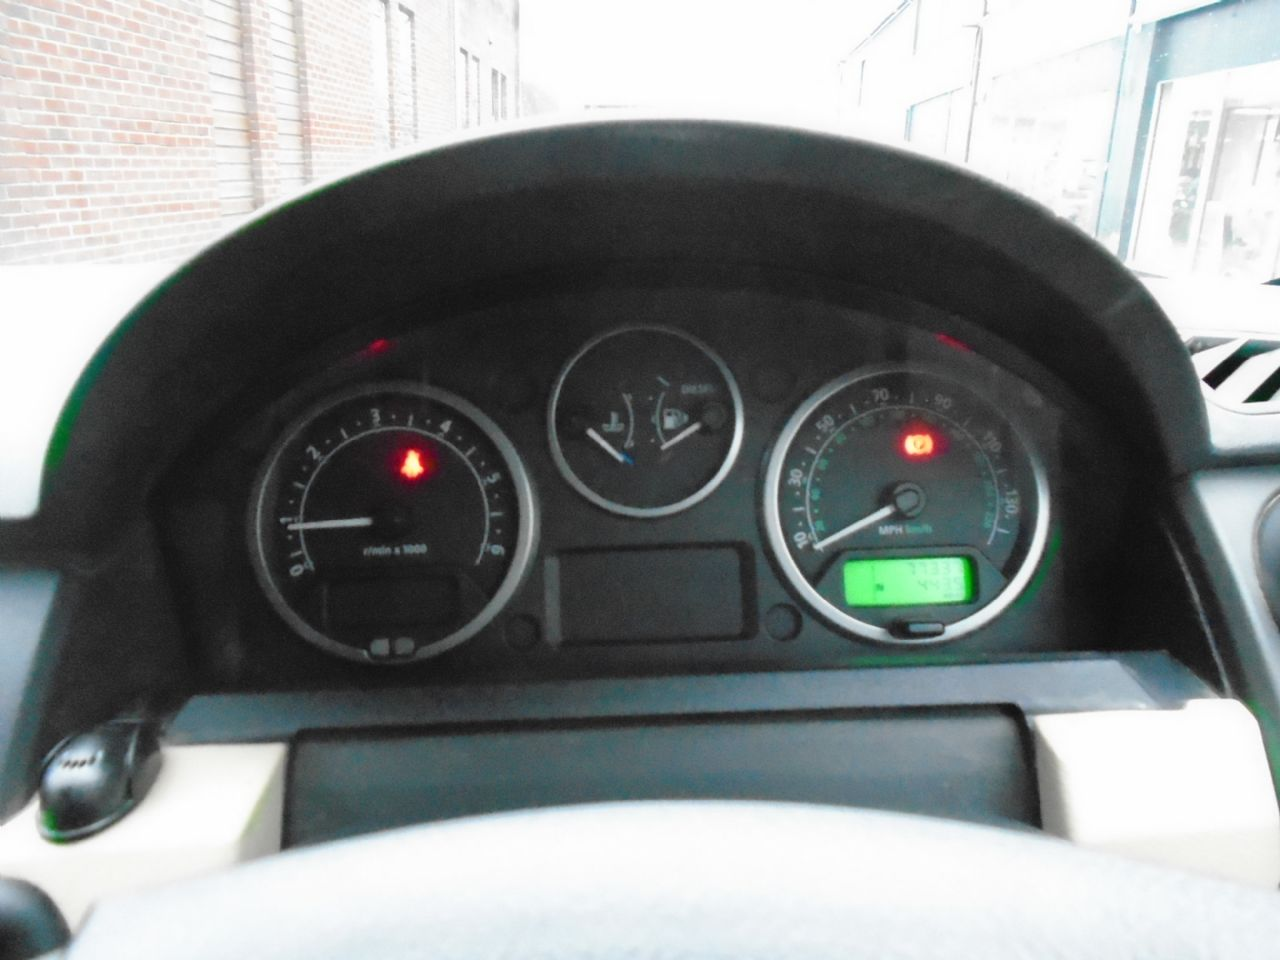 LAND ROVER Discovery 3 TDV6 5 Seat - Picture 5